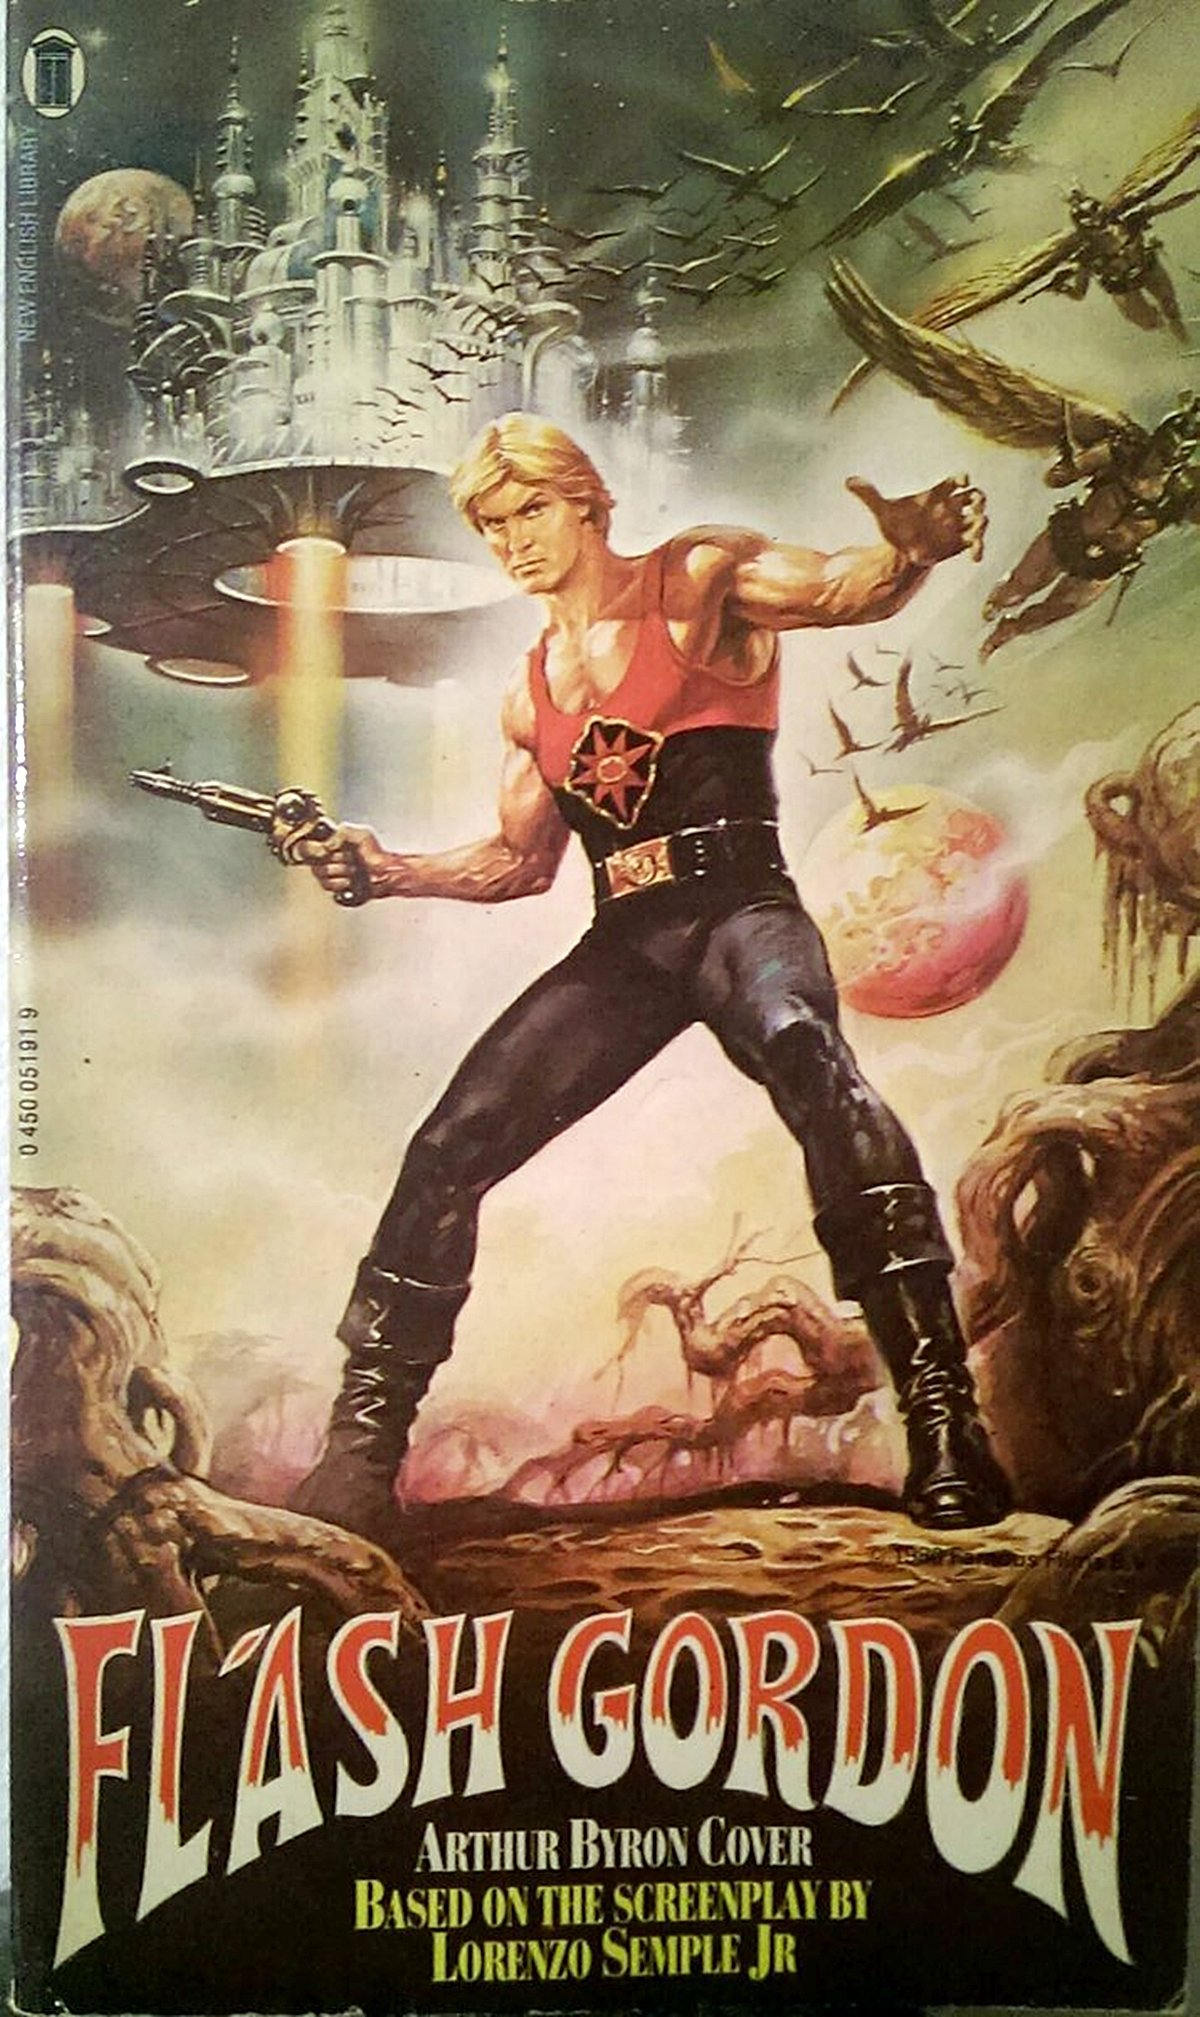 10 10 23 Things You Probably Didn't Know About Flash Gordon